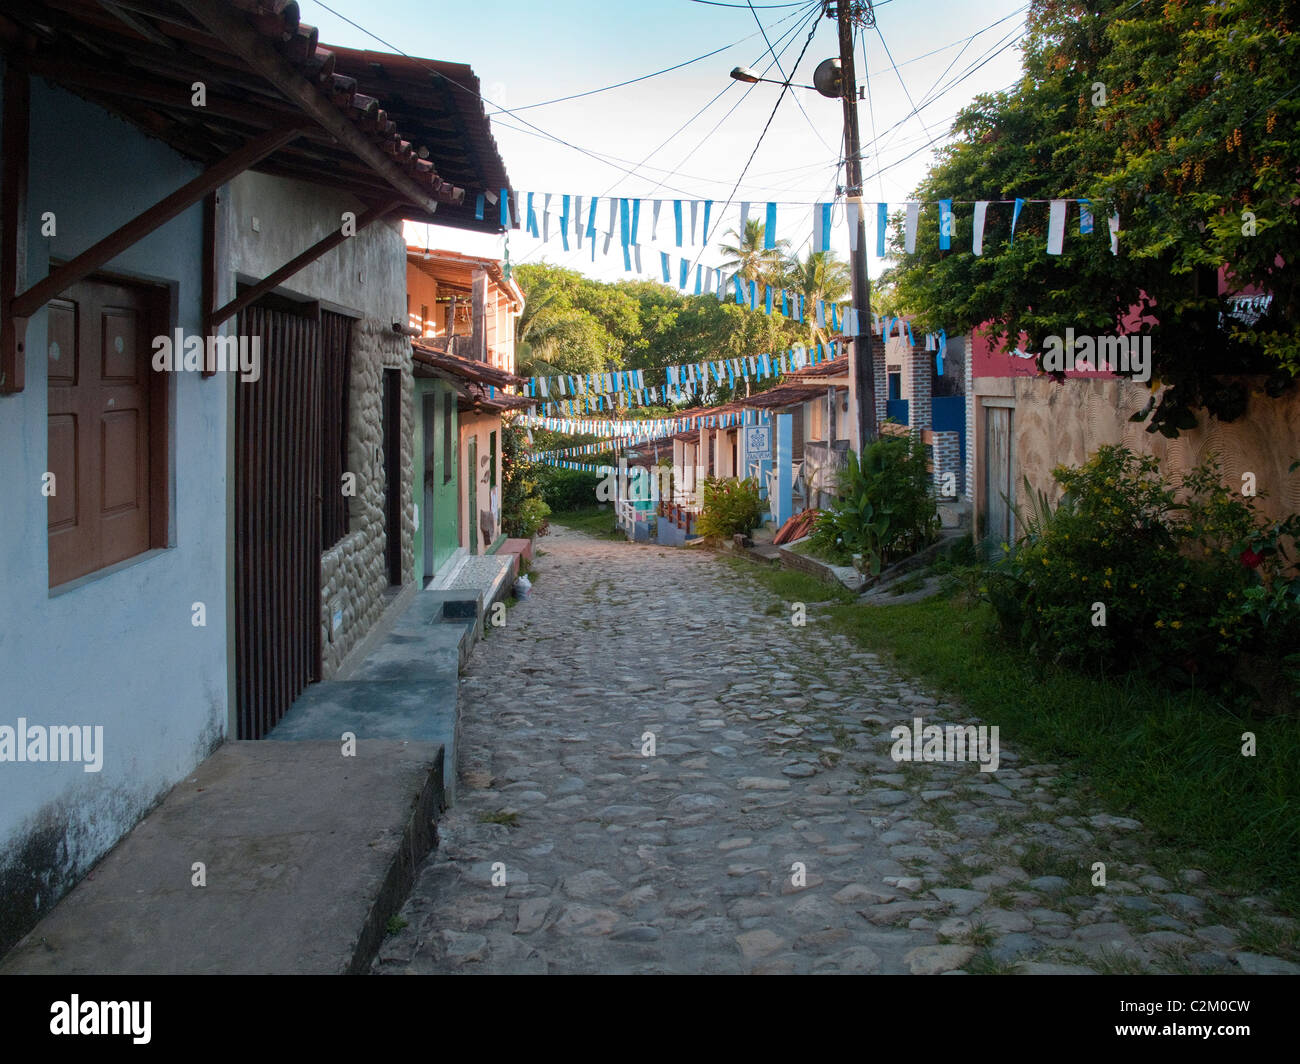 Empty street on Boipeba Island, Bahia State, Brazil, just after Carnival - Stock Image